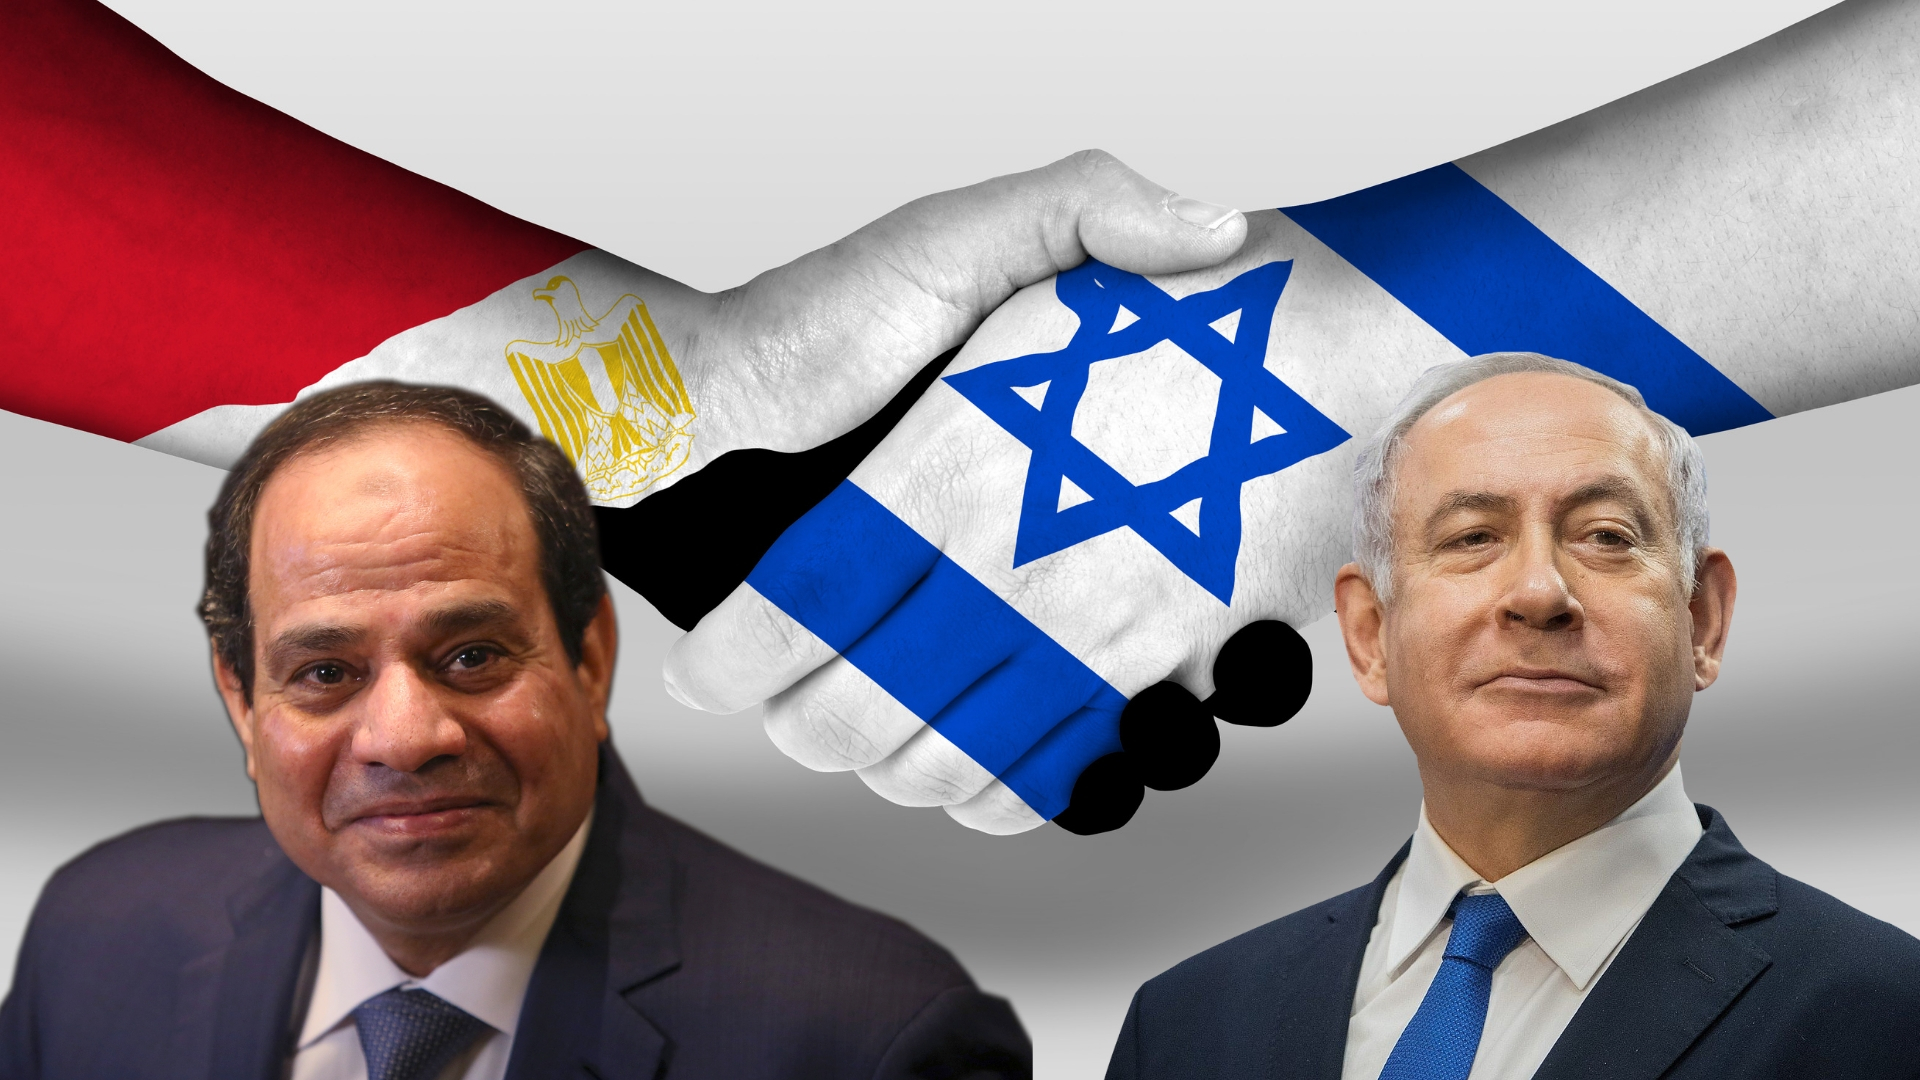 Egypt-Israel Relations Tight as Pipes: 5 Geopolitical Effects You Need to Know